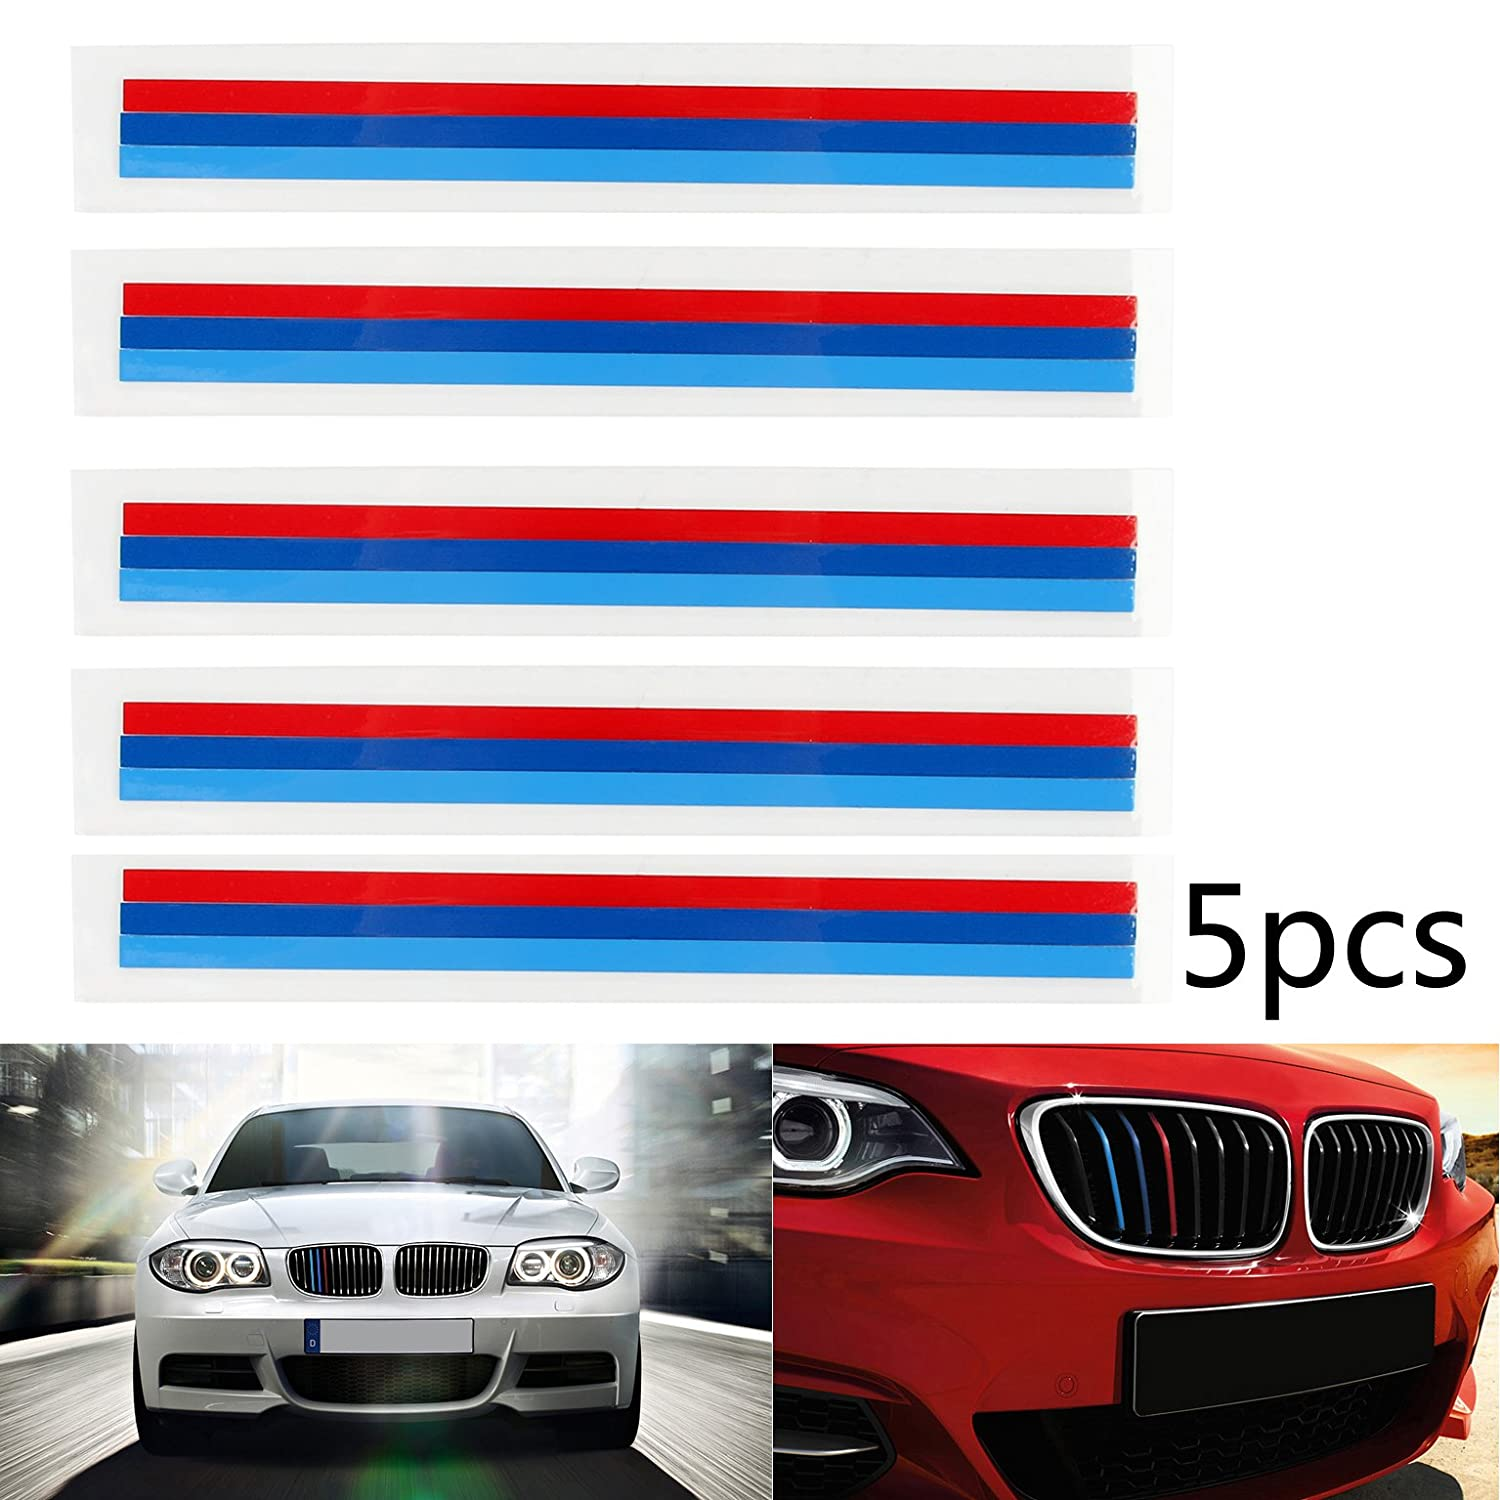 Areyourshop 5pcs Front Grille Grill Vinyl Strip Sticker Decal for BMW M3 M5 E46 E60 E90 E92 цена